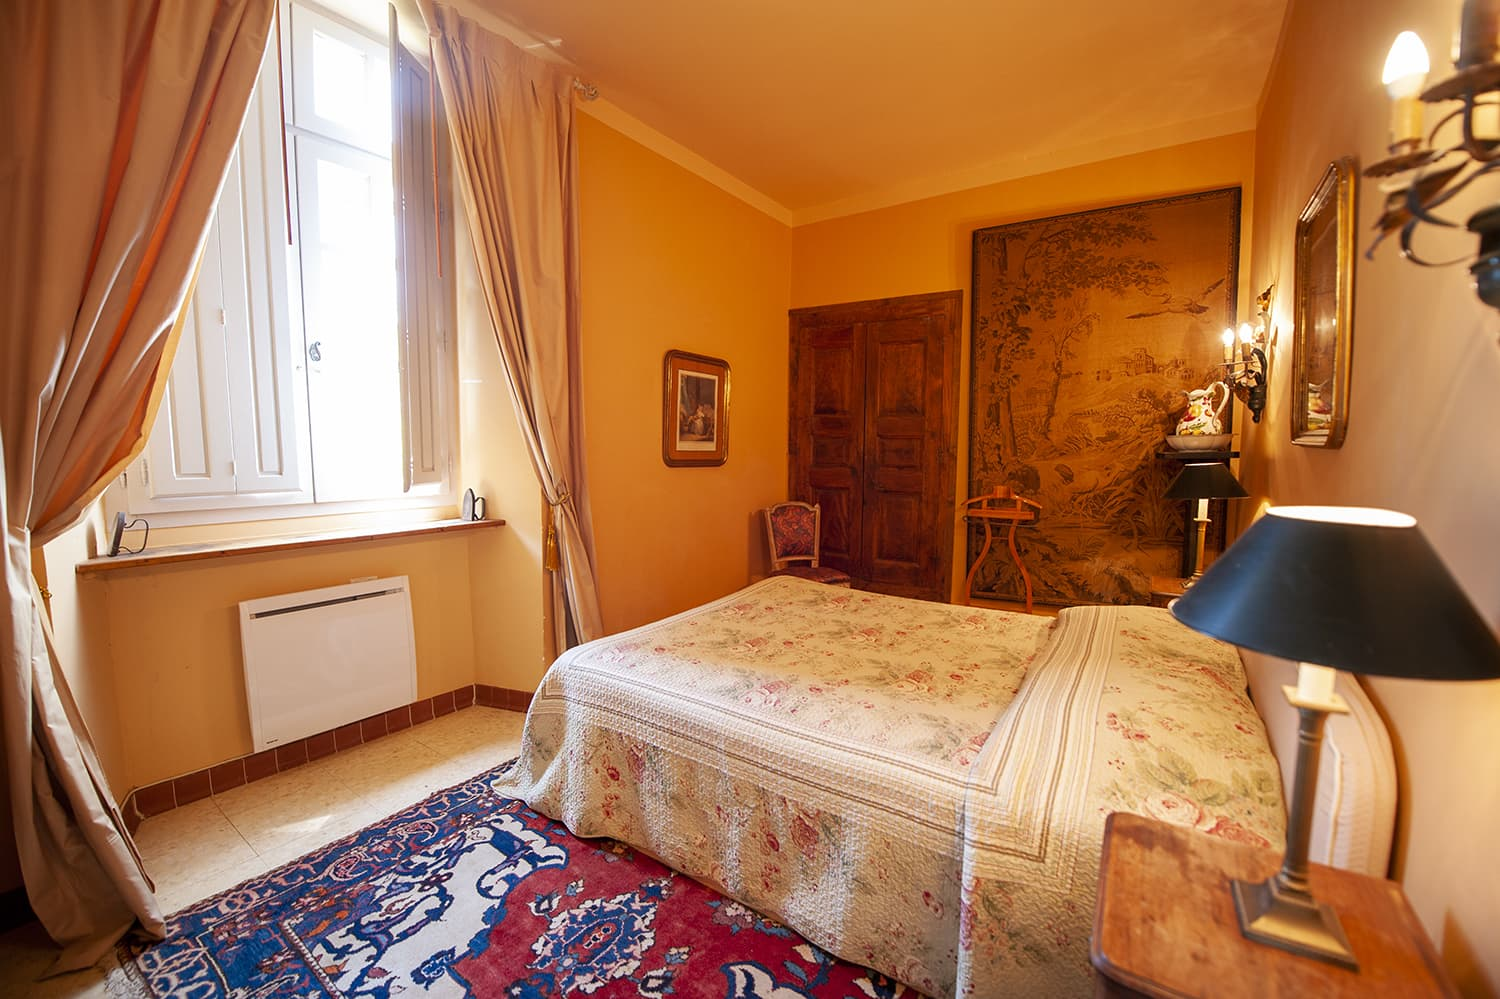 Bedroom in Cazouls-lès-Béziers holiday château